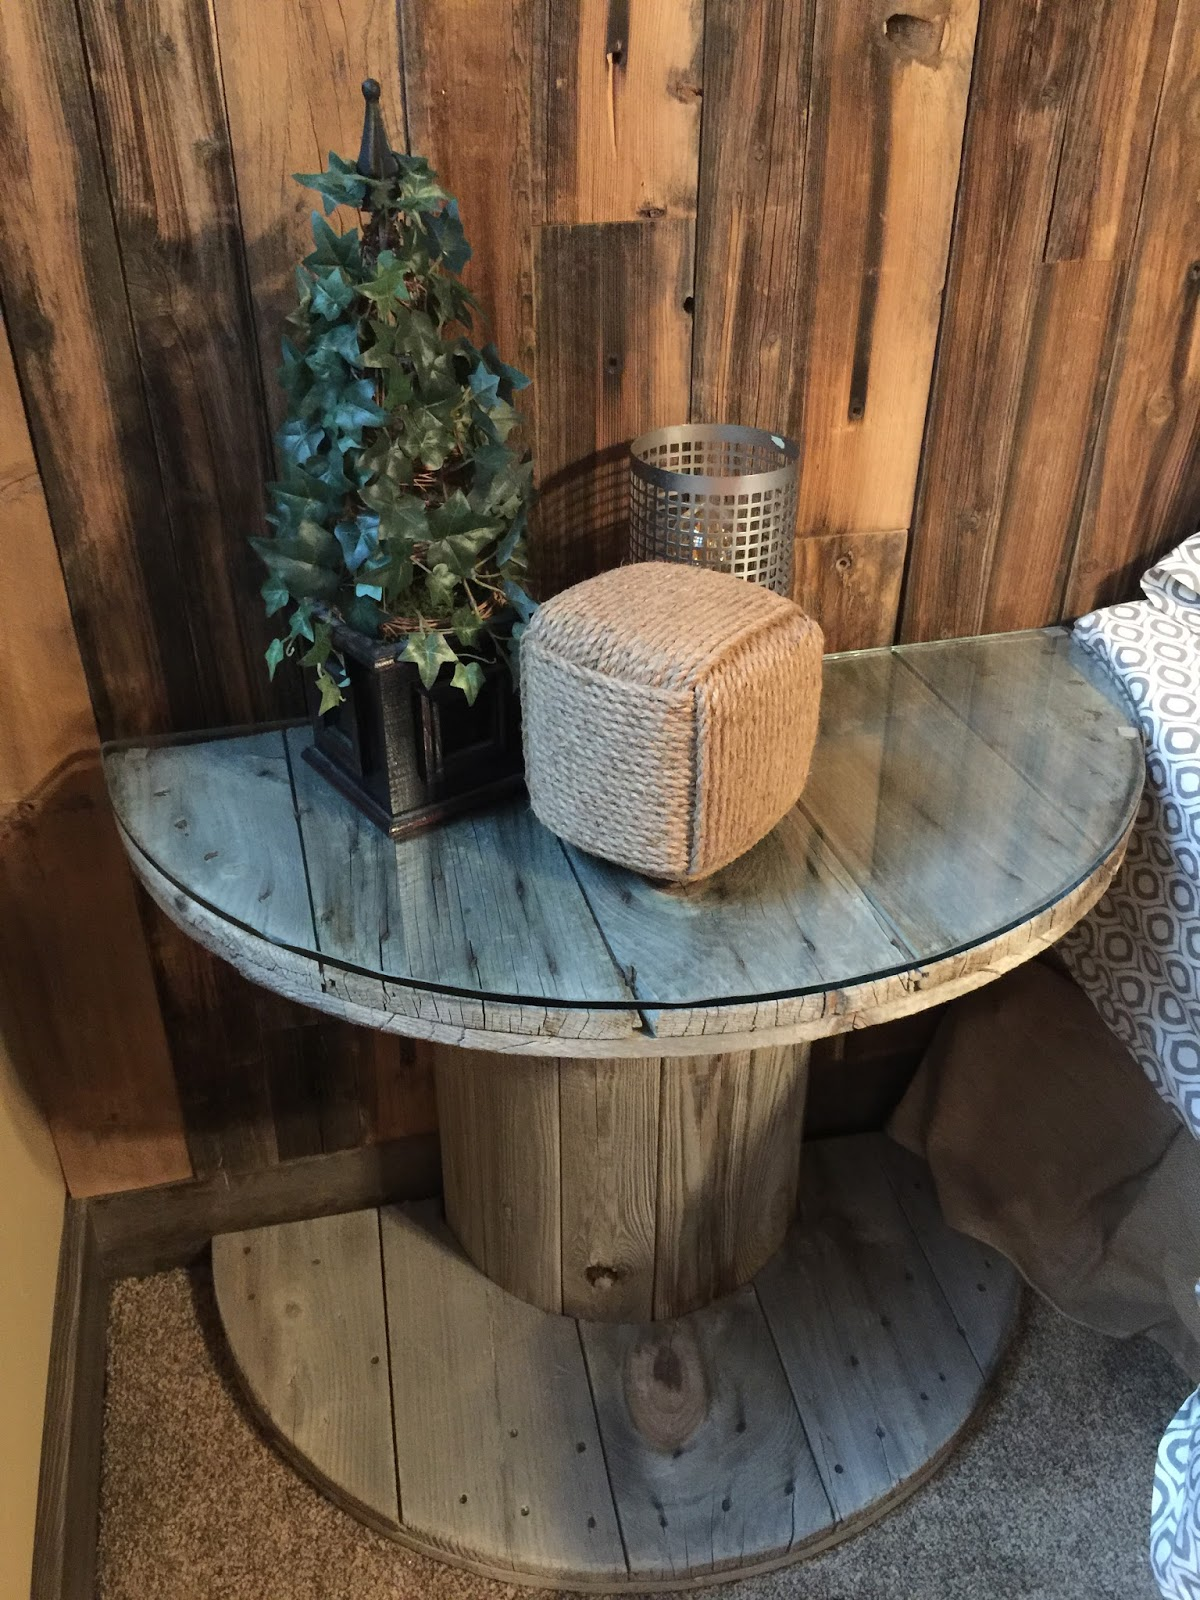 Wooden Electrical Spool Table Turned Into A Bedside Nightstand A Vision To Remember All Things Handmade Blog Wooden Electrical Spool Table Turned Into A Bedside Nightstand